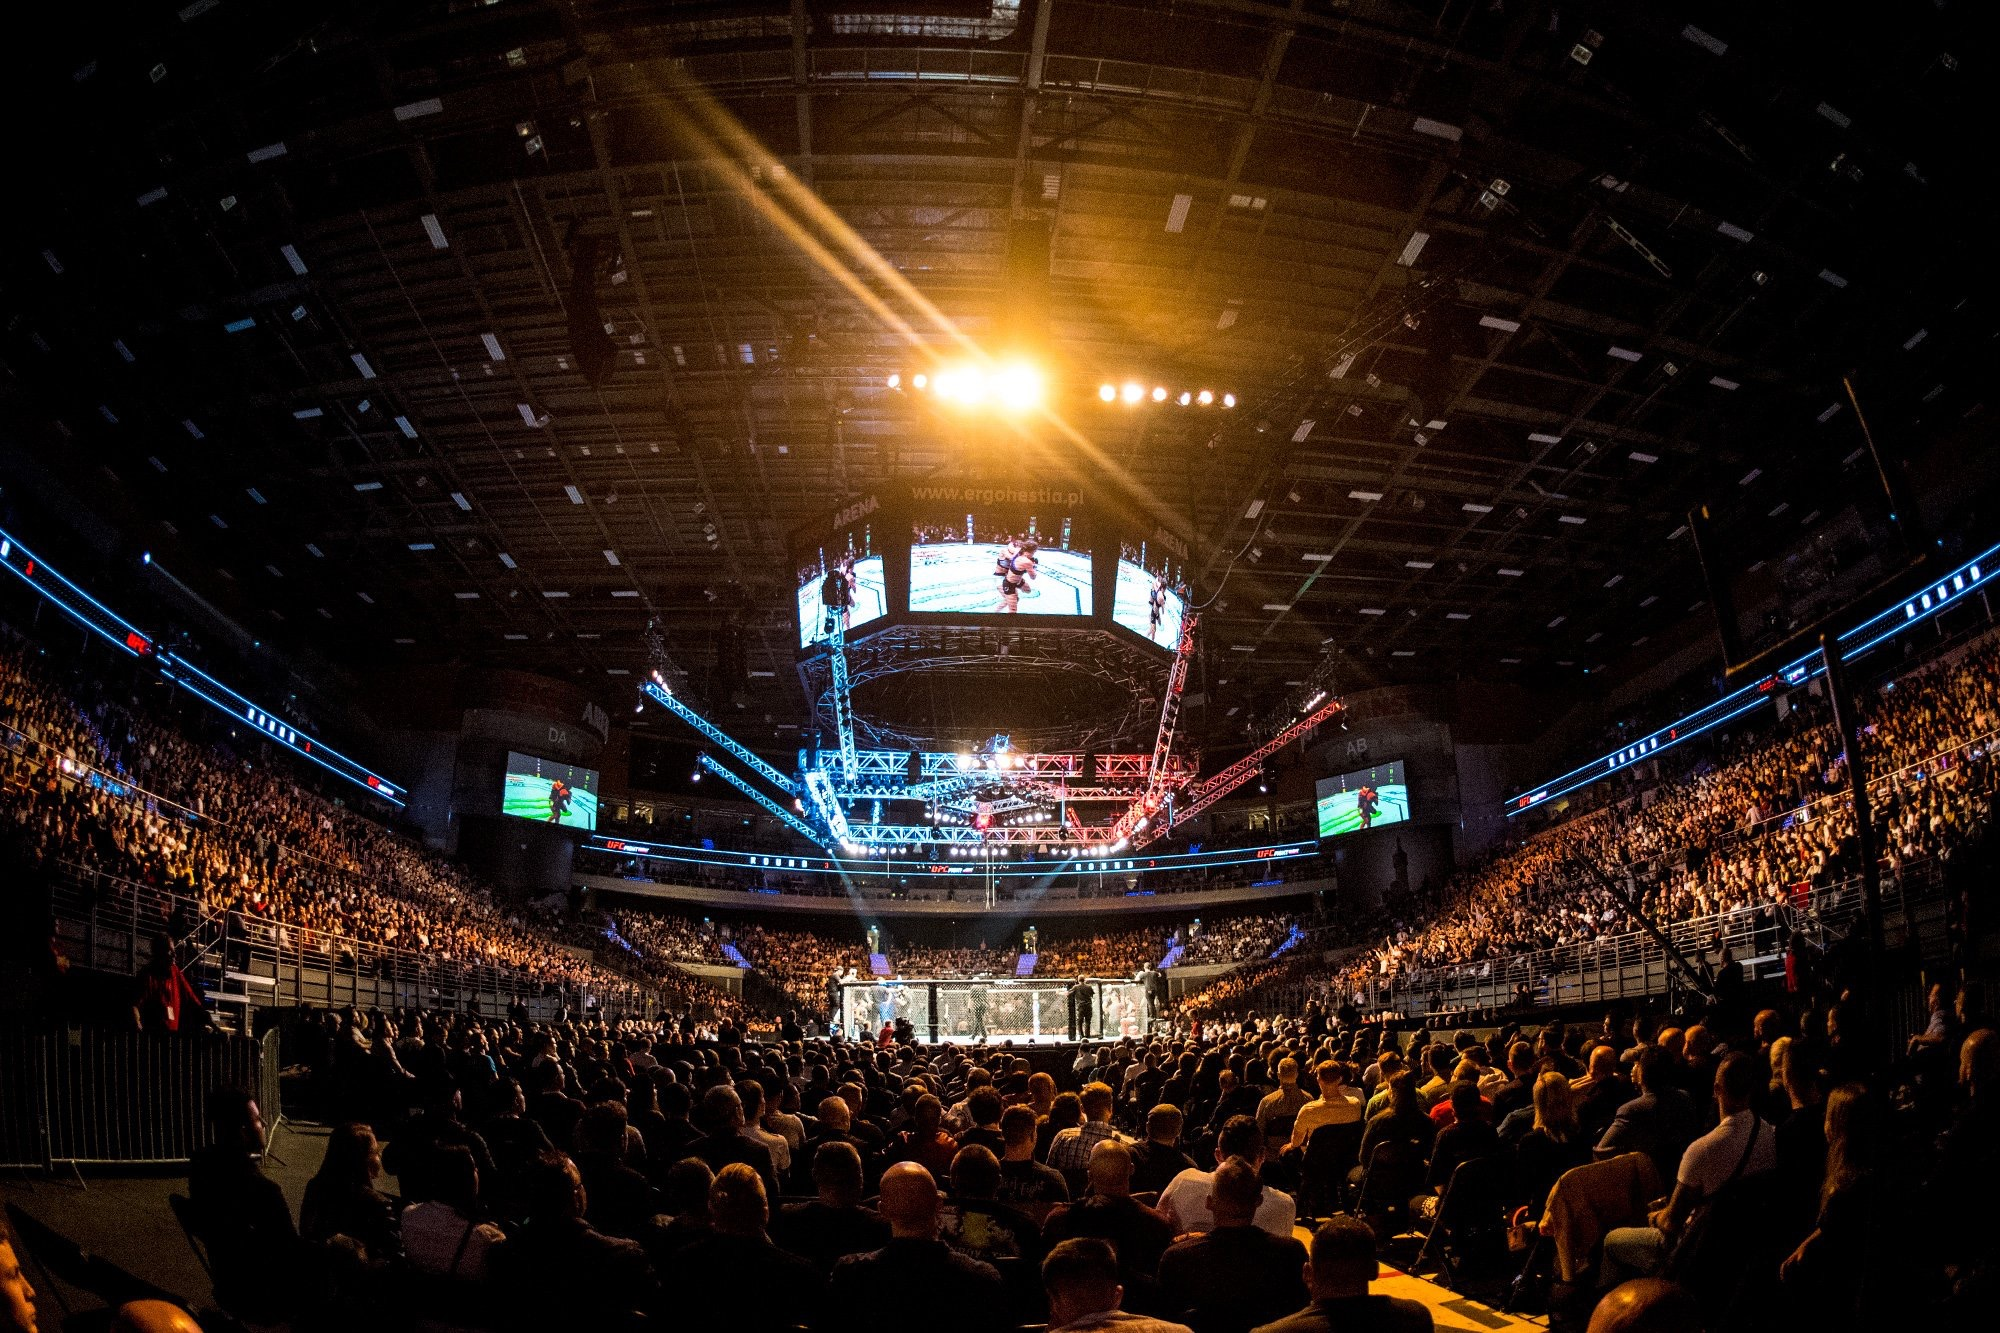 the ufc in gdansk - the summary of the event - tricitynews